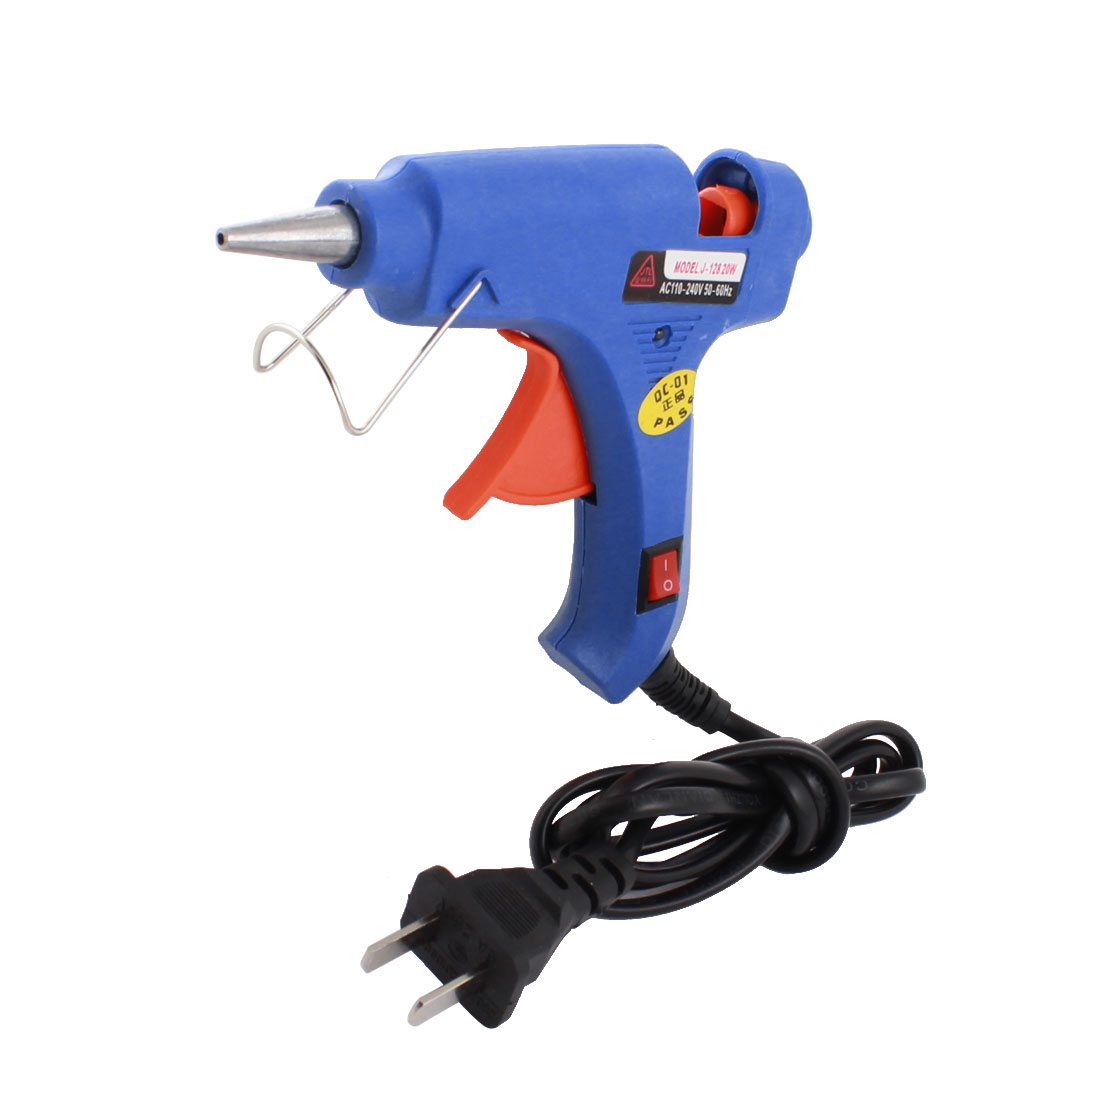 AC 110-240V US Plug 20W 2mm Tapered Nozzle Hot Melt Glue Gun J-128